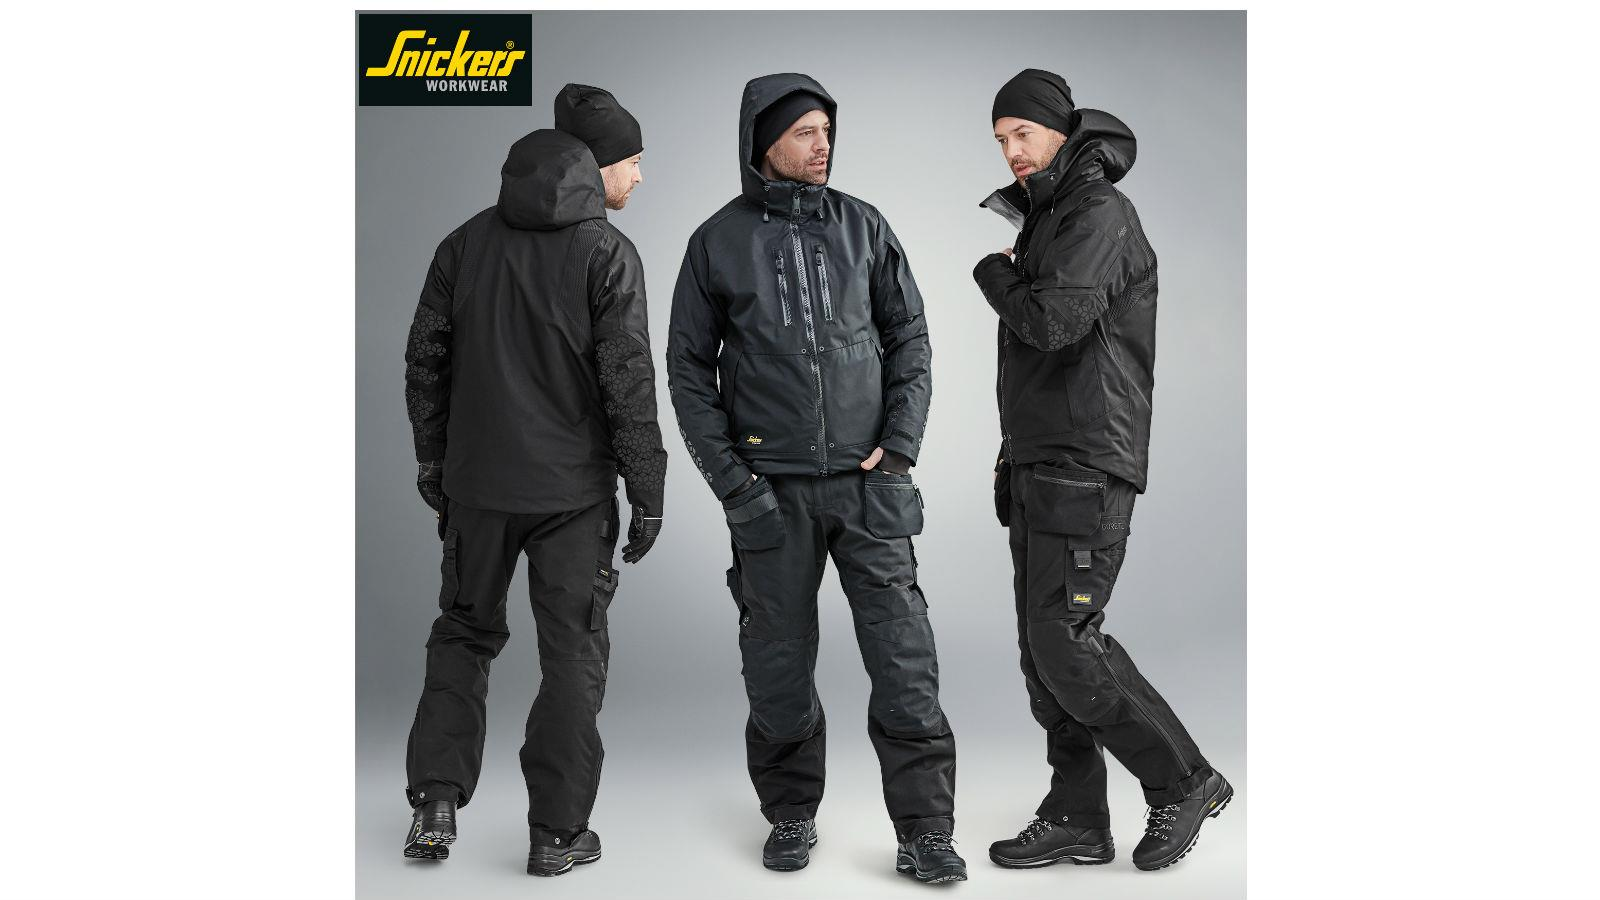 Snickers Workwear FlexiWork Insulated Jackets and Trousers image